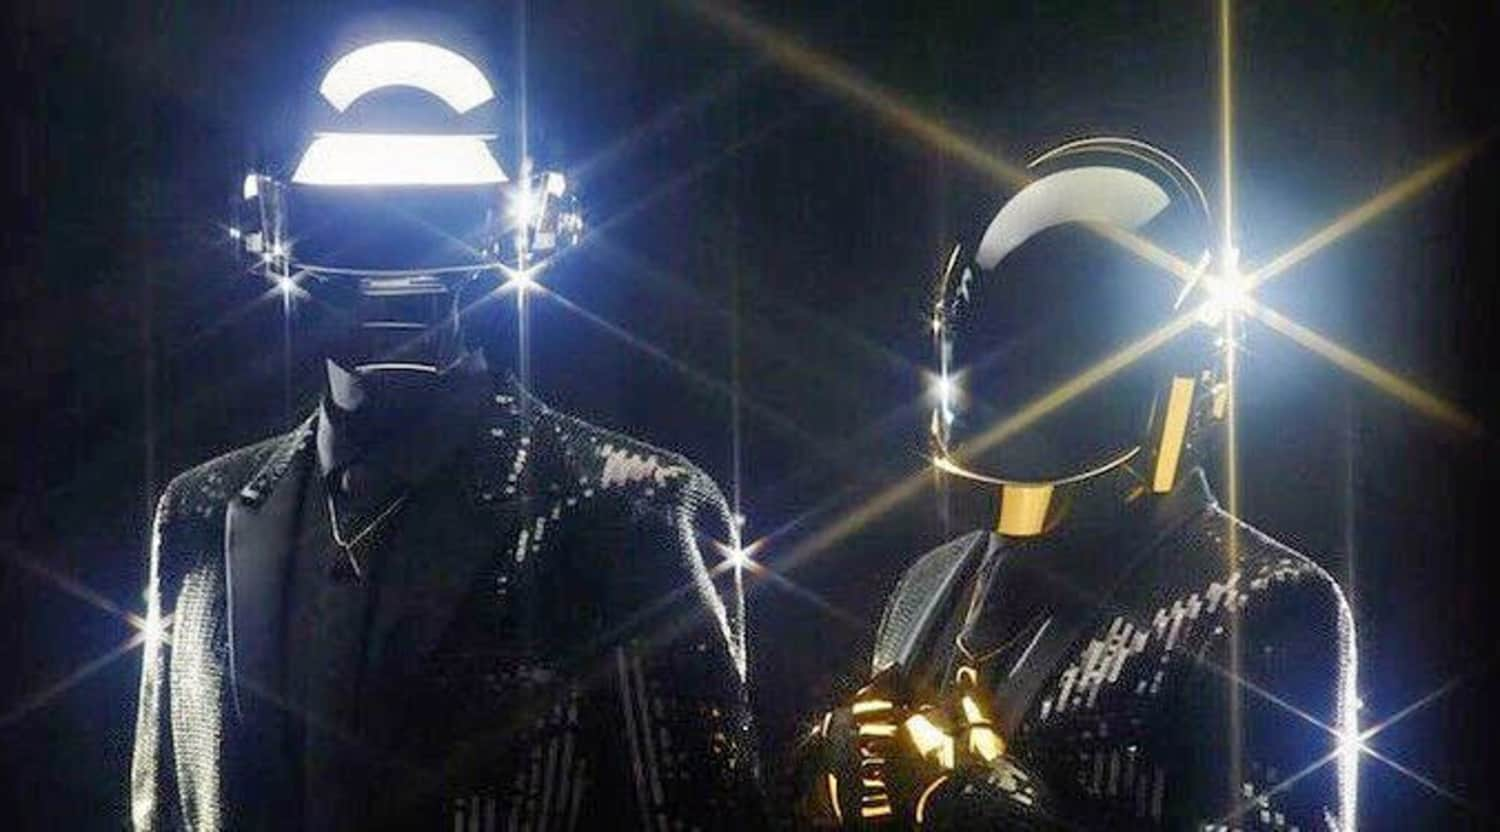 the duo of Daft Punk standing in their chrome helmets, shining very brightly